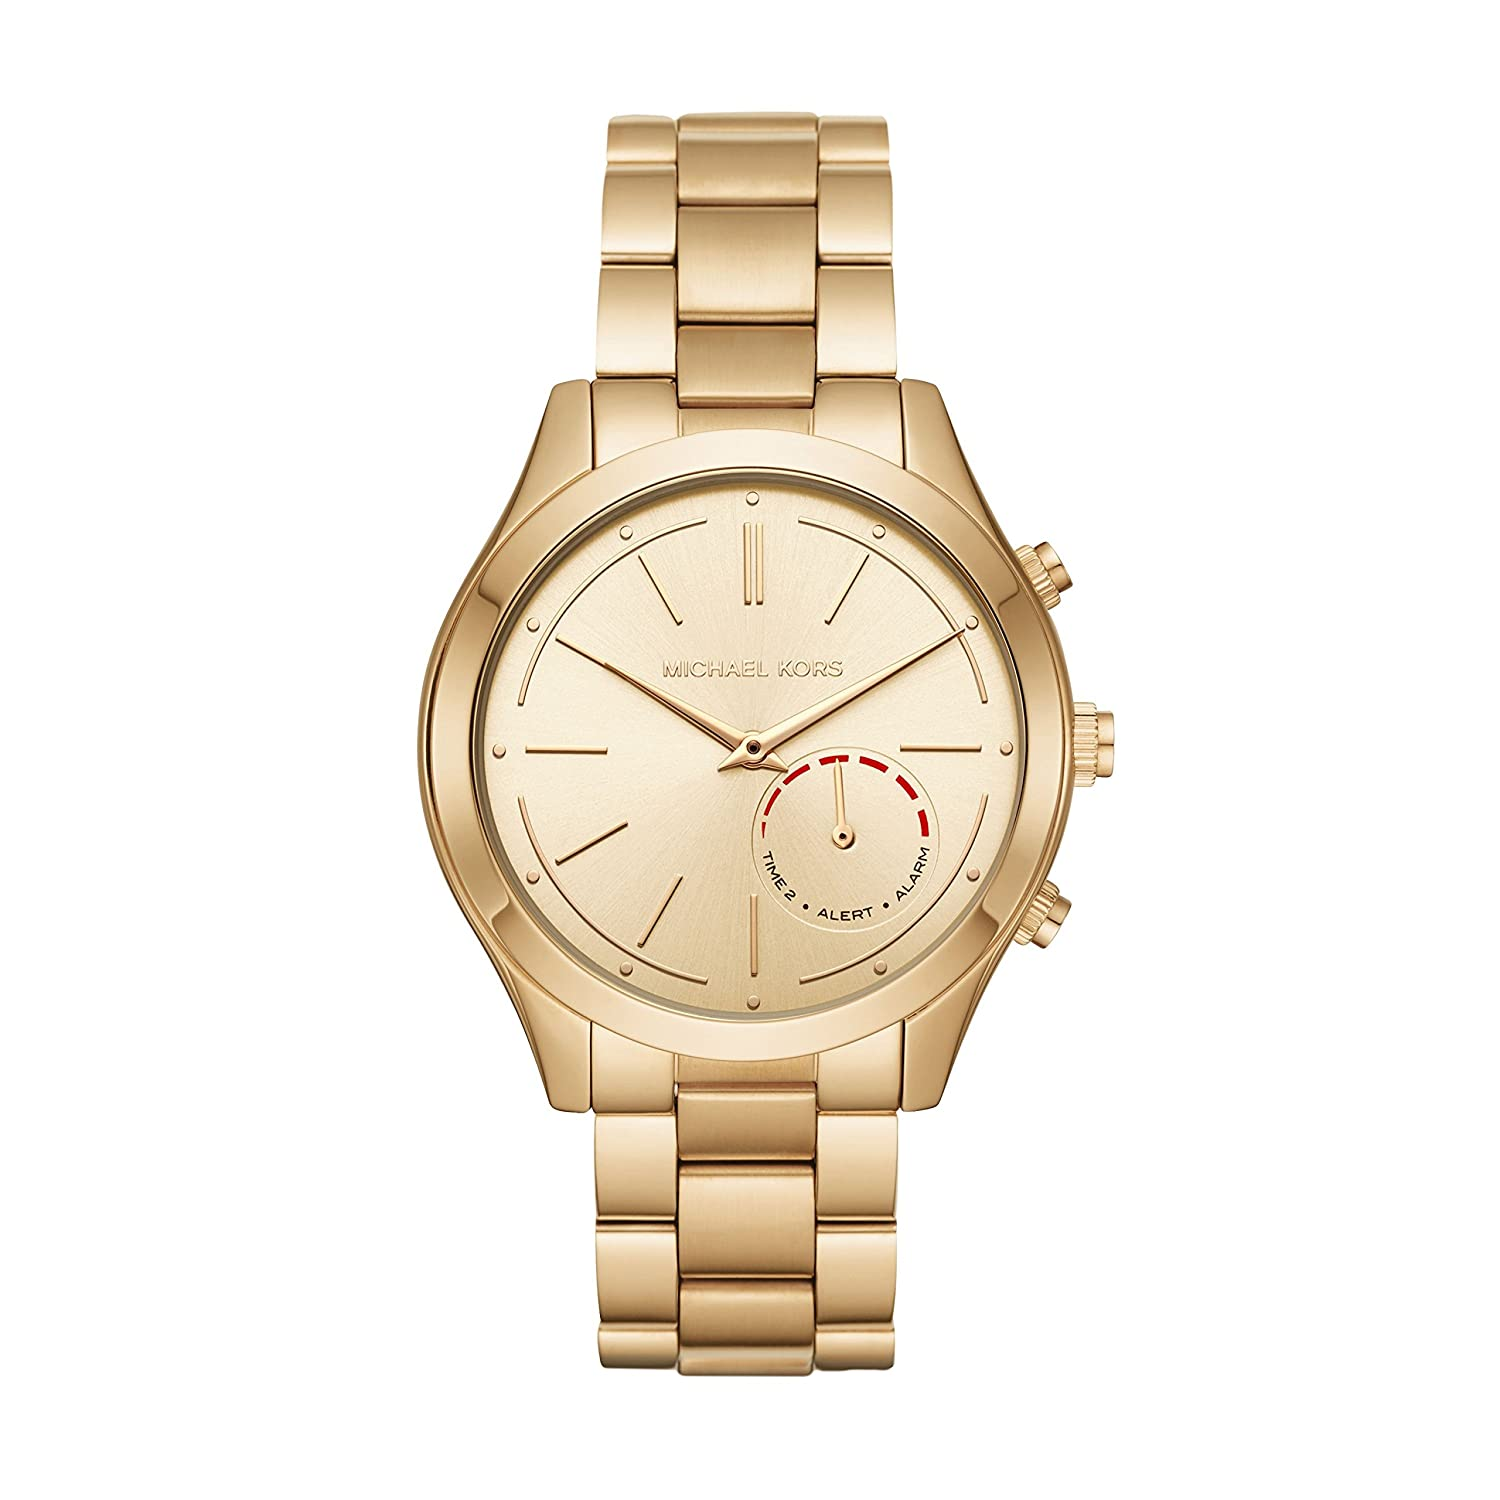 Amazon.com: Michael Kors Slim Runway Reloj inteligente ...